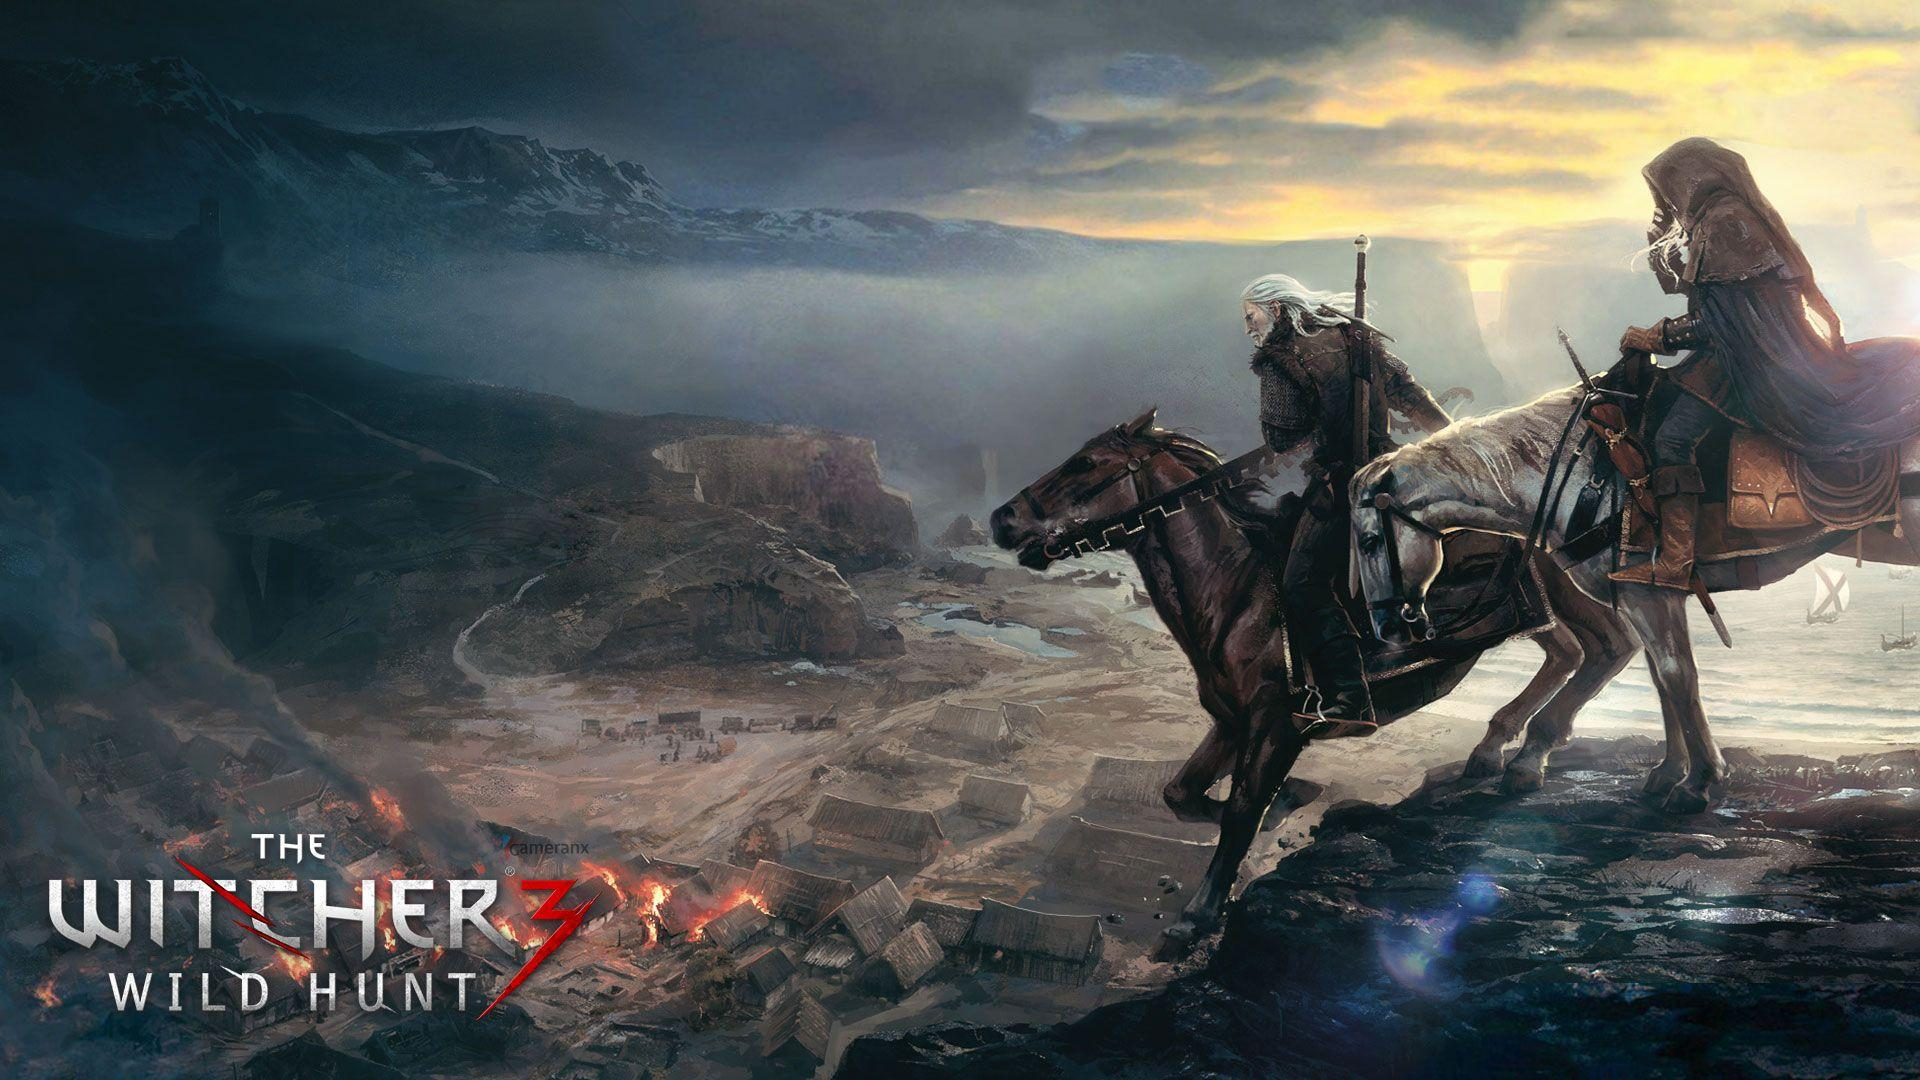 The Witcher 3 Wild Hunt Wallpapers High Quality